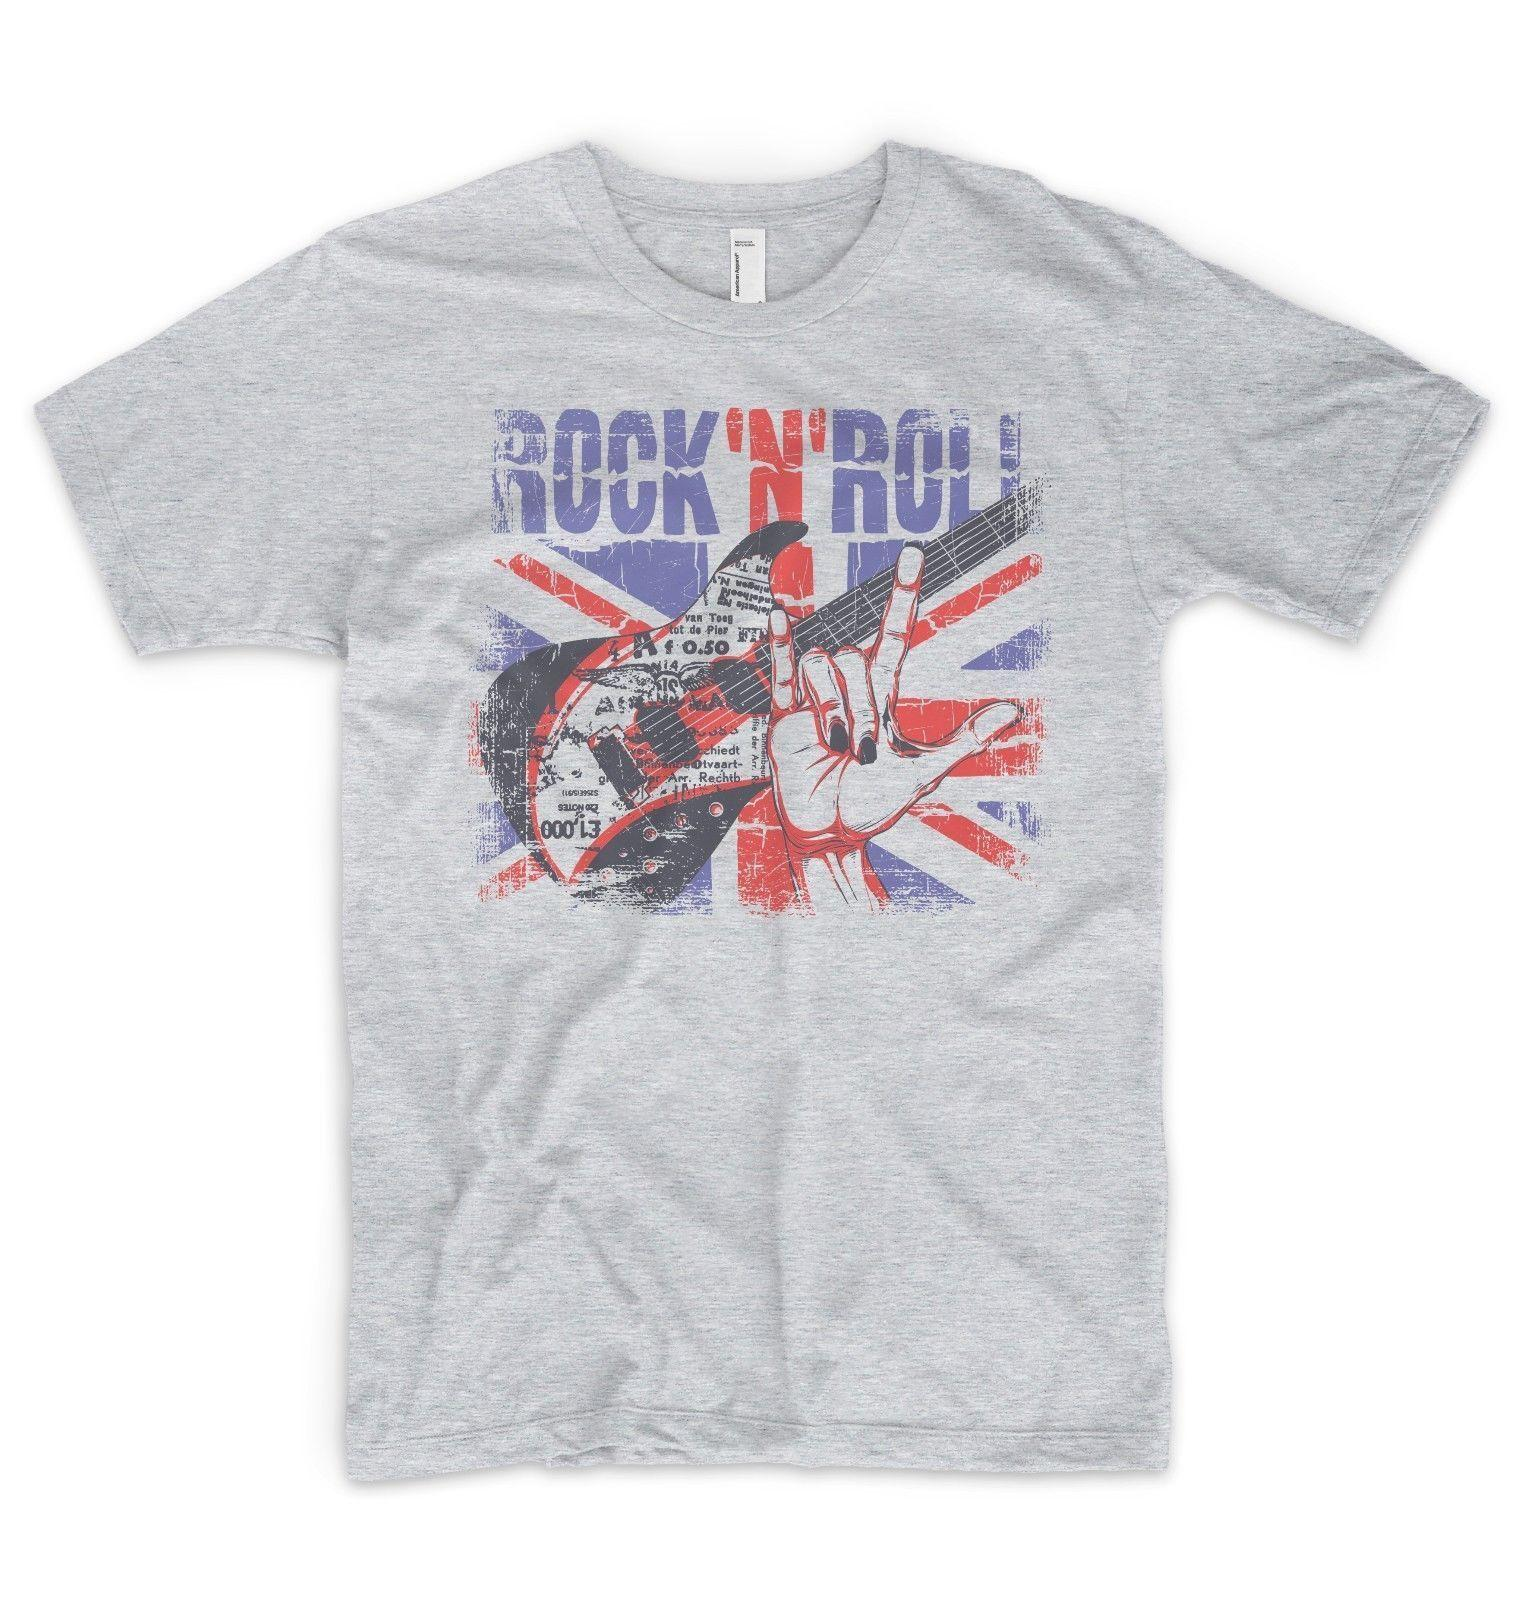 Details Zu Union Jack T Shirt British Flag Rock N Roll Guitar Punk Music  Oasis Queen Funny R Shirt Political Tee Shirts From Lukehappy13 15c32fde760d